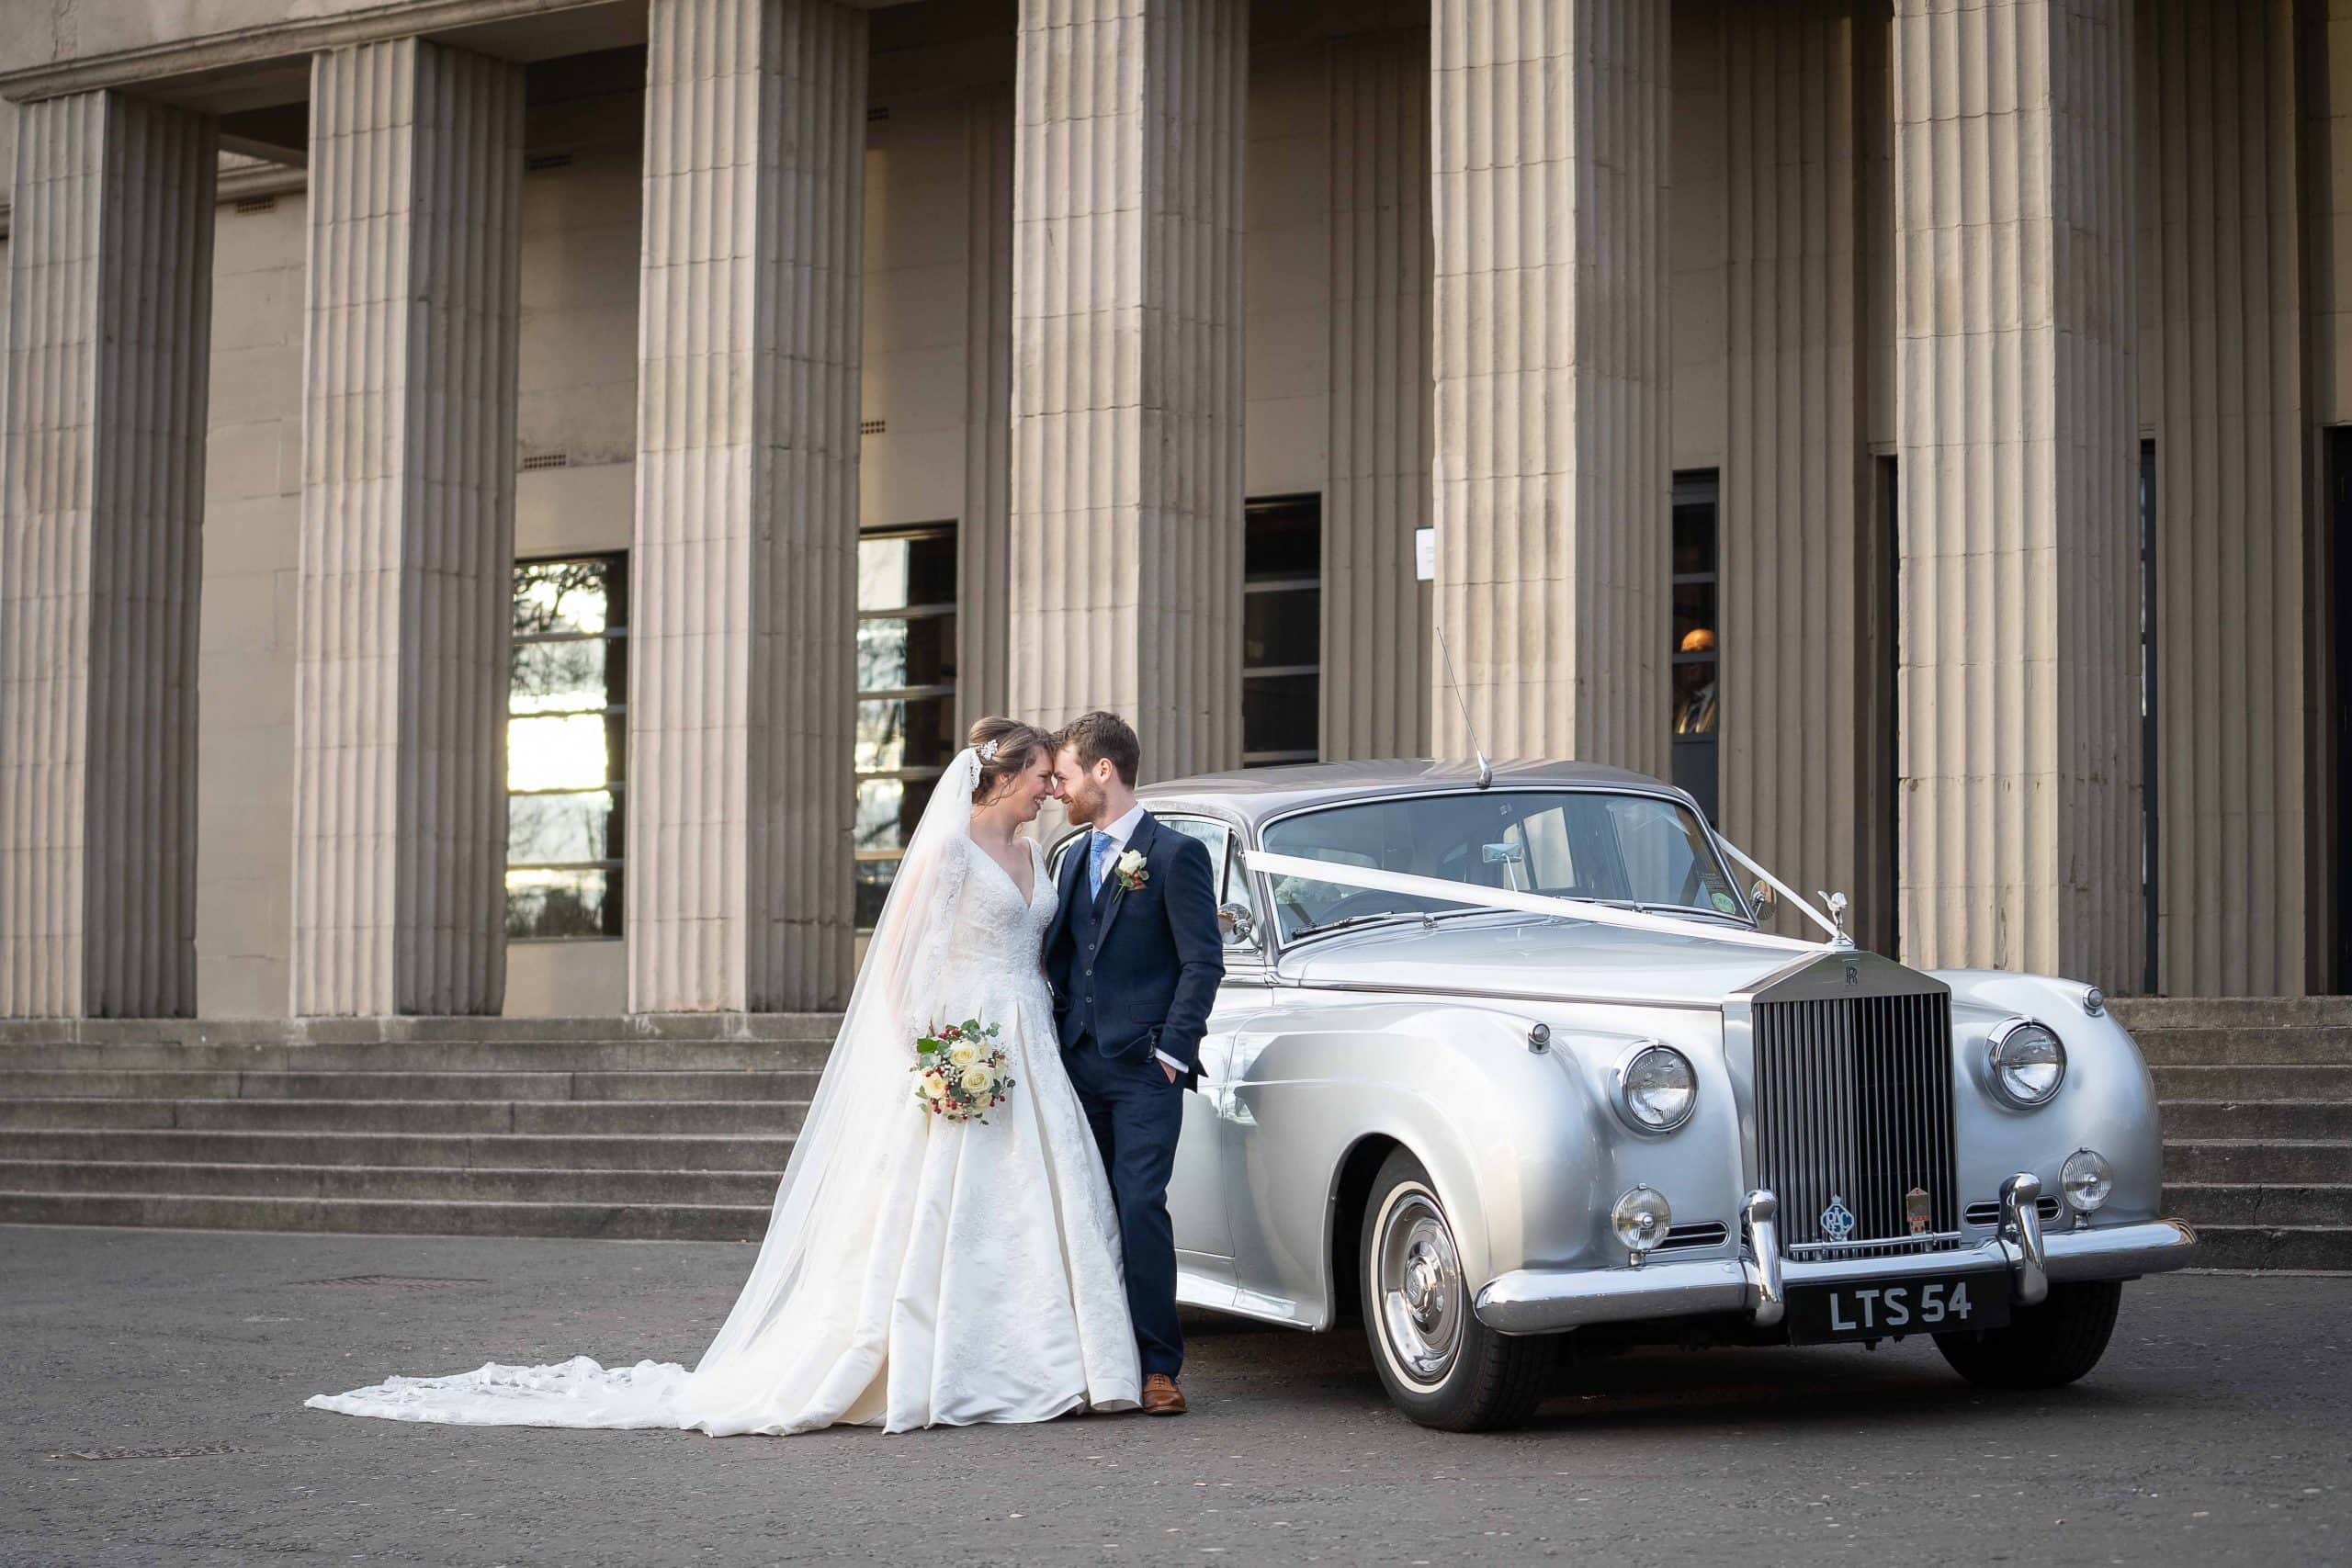 Bride and Groom next to wedding car at Wylam Brewery